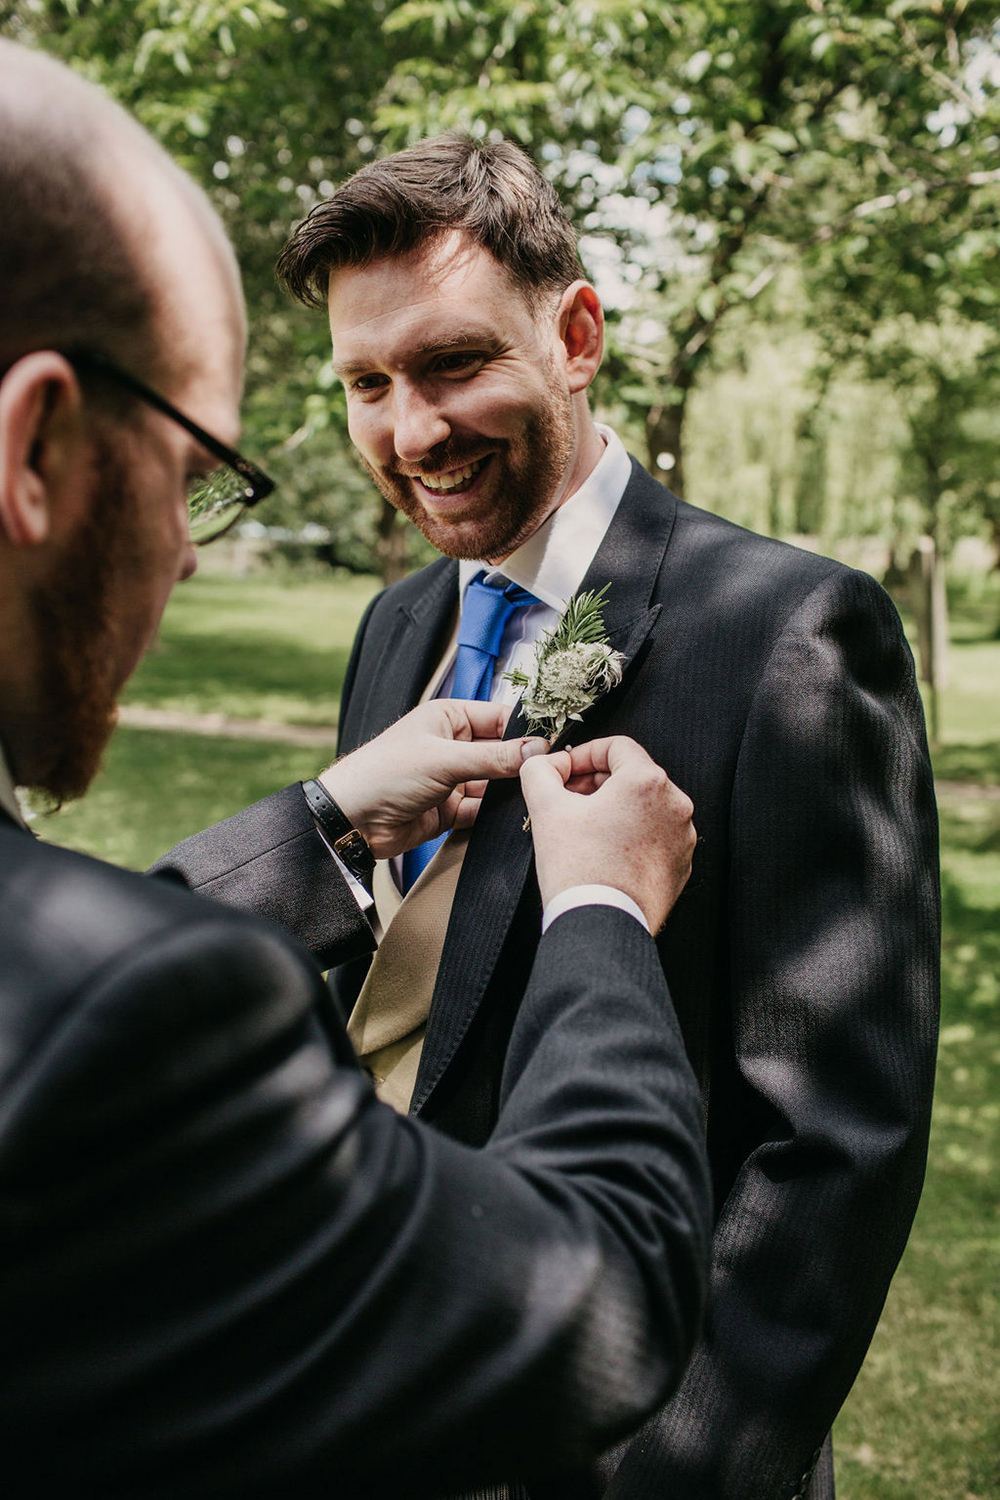 Groom Suit Traditional Tails Buttonhole Celeste Marquee Wedding Sarah Longworth Photography